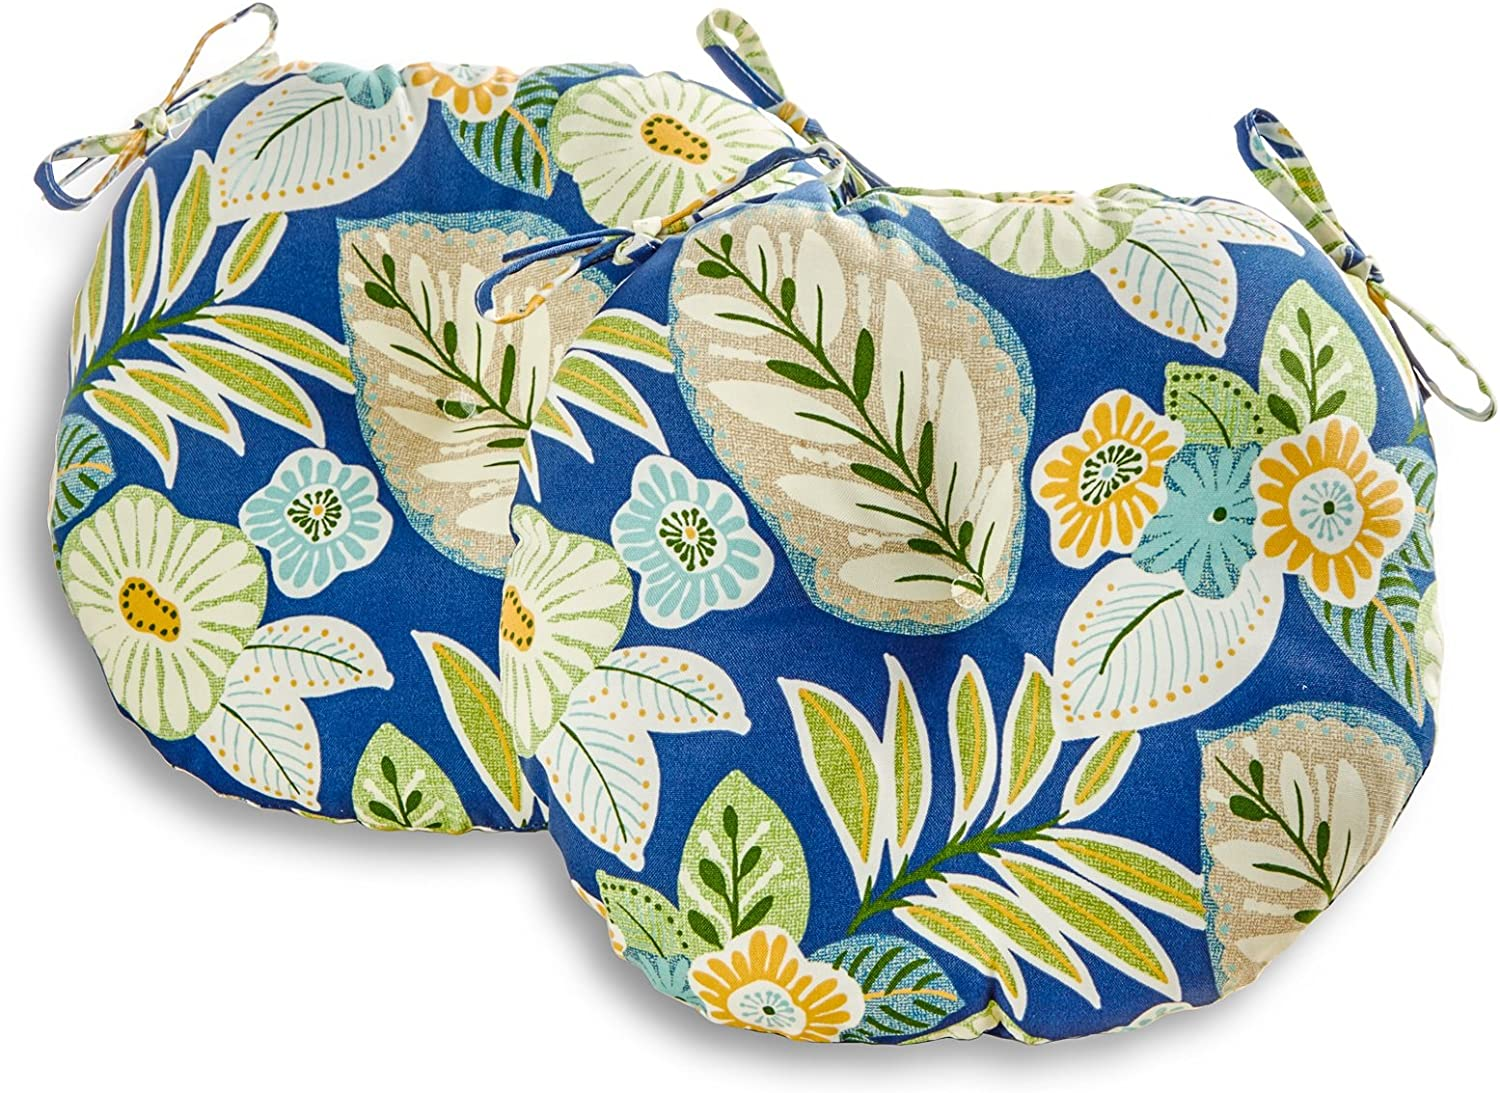 Greendale Home Fashions AZ5817S2-MARLOW Magnolia Floral Outdoor 18-inch Bistro Seat Cushion (Set of 2)